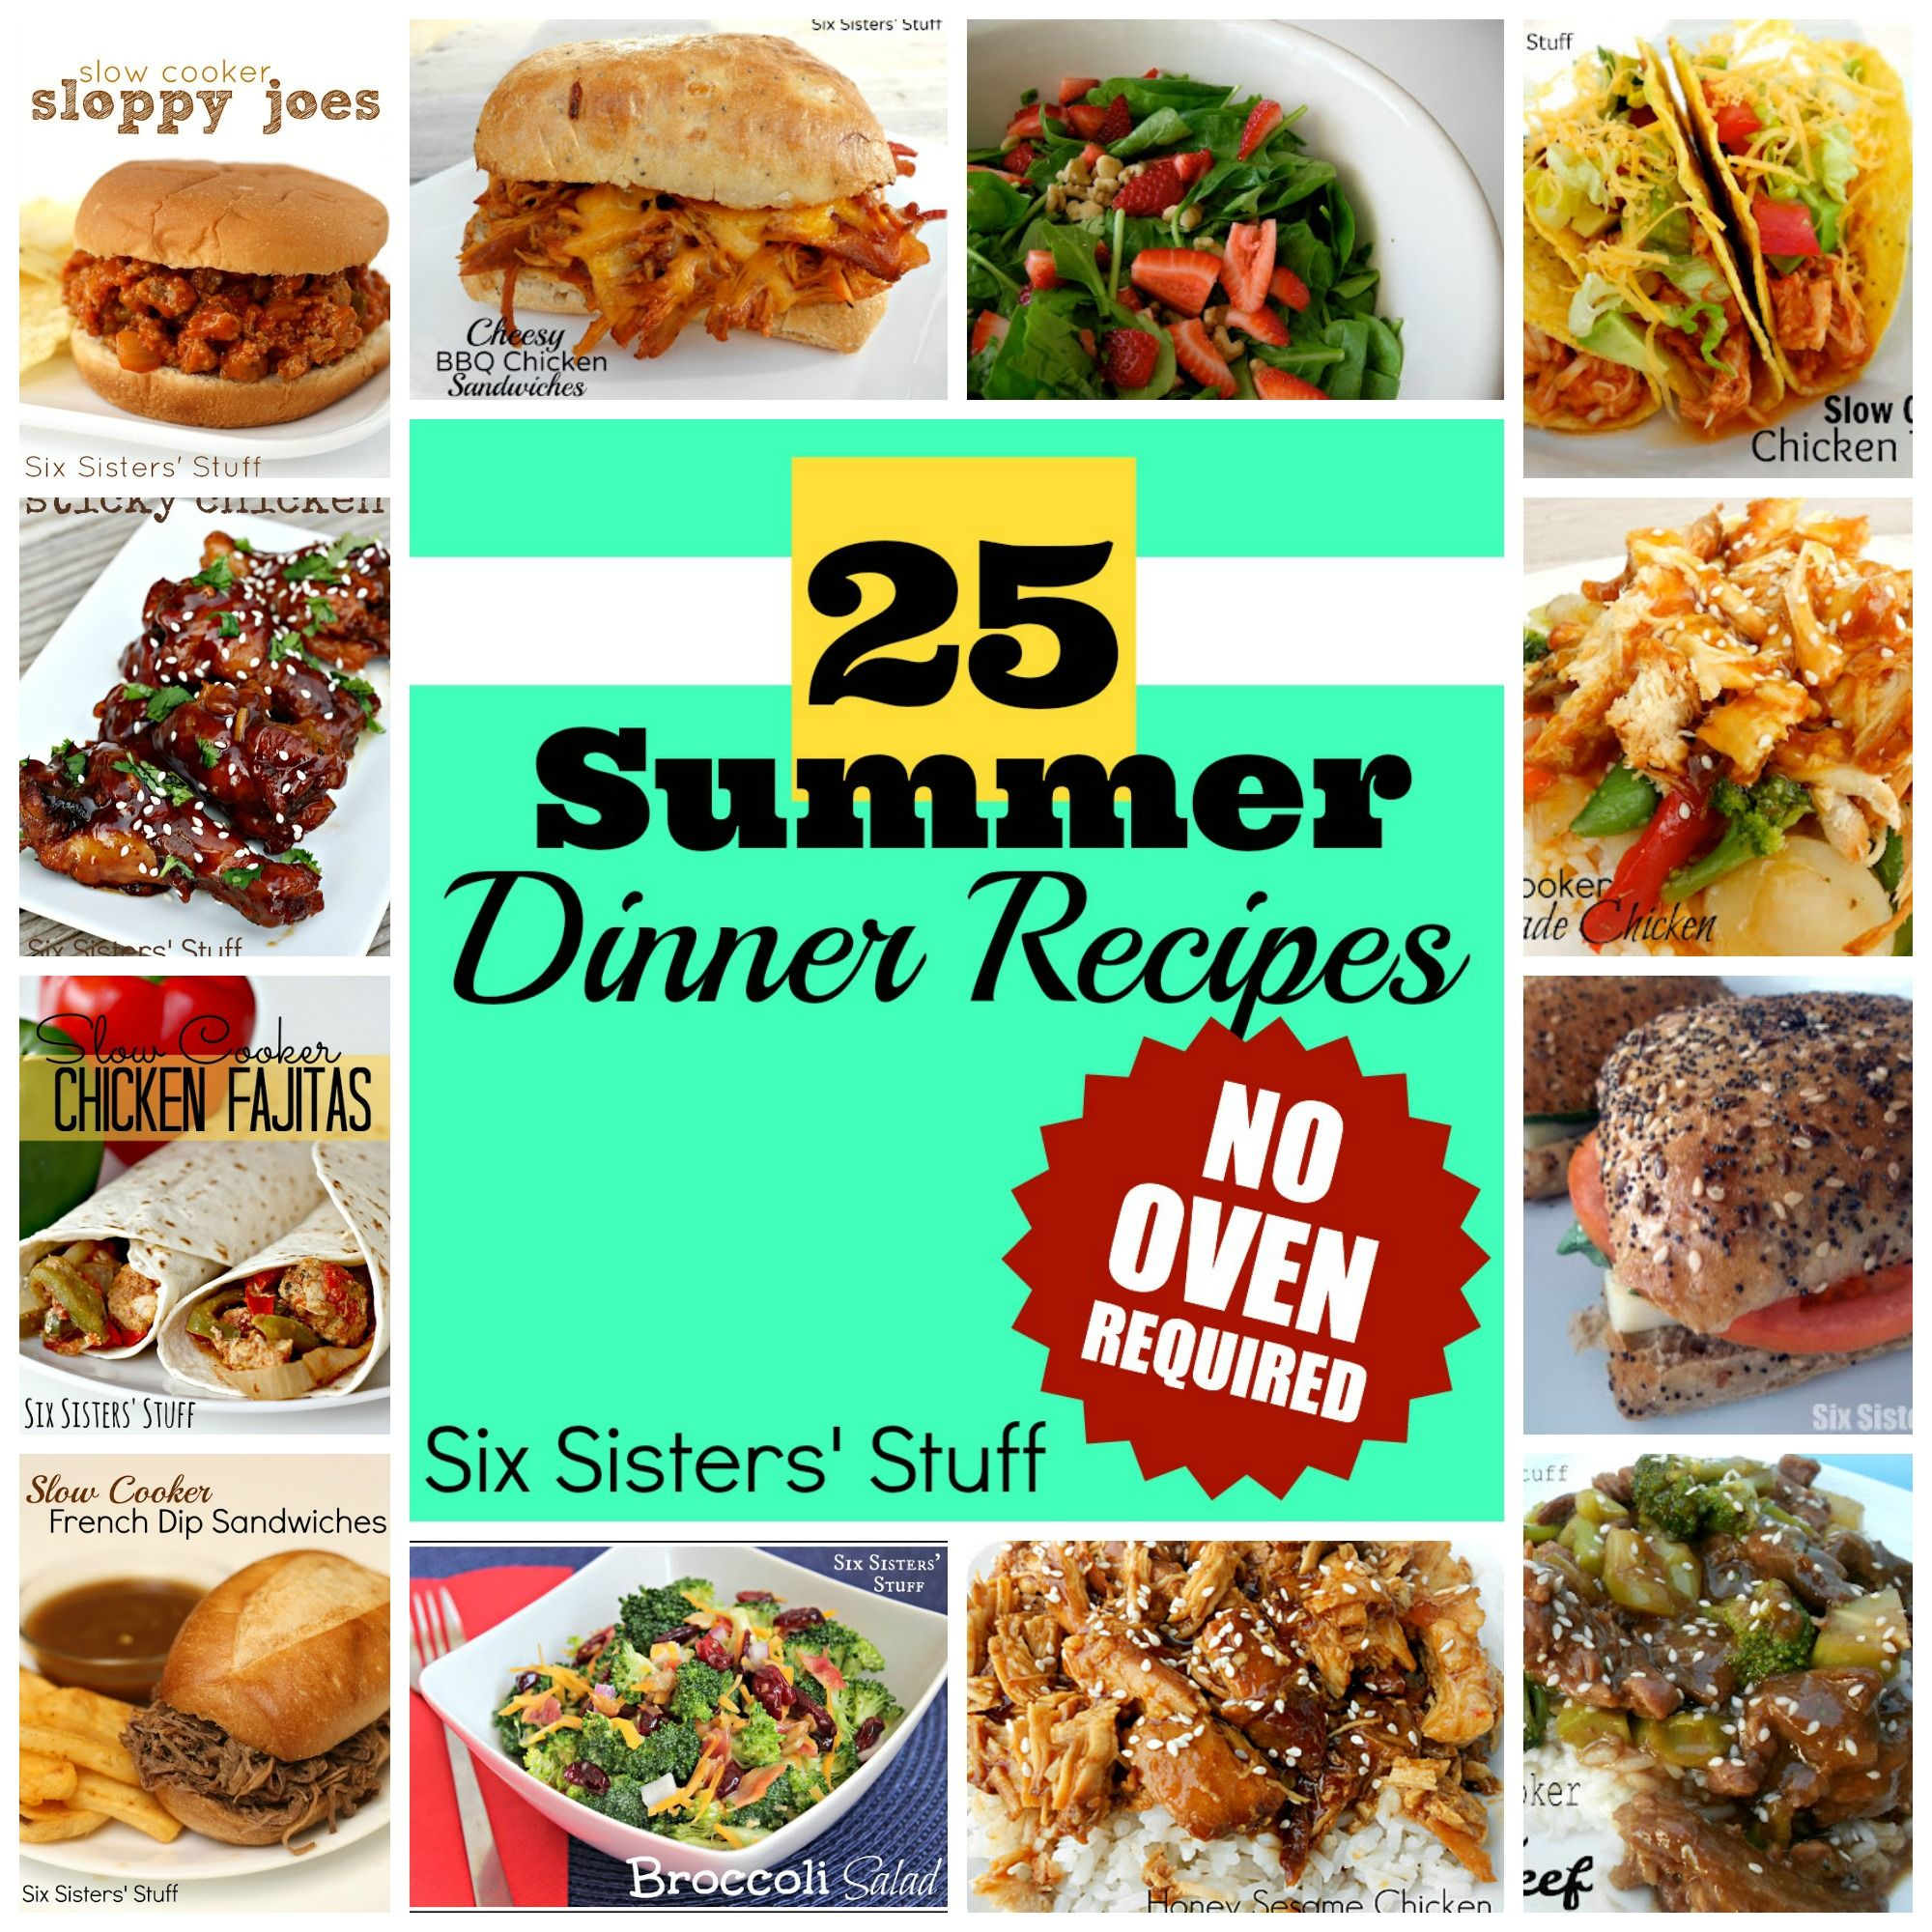 25 Summer Dinner Recipes From Sixsistersstuff Com No Oven